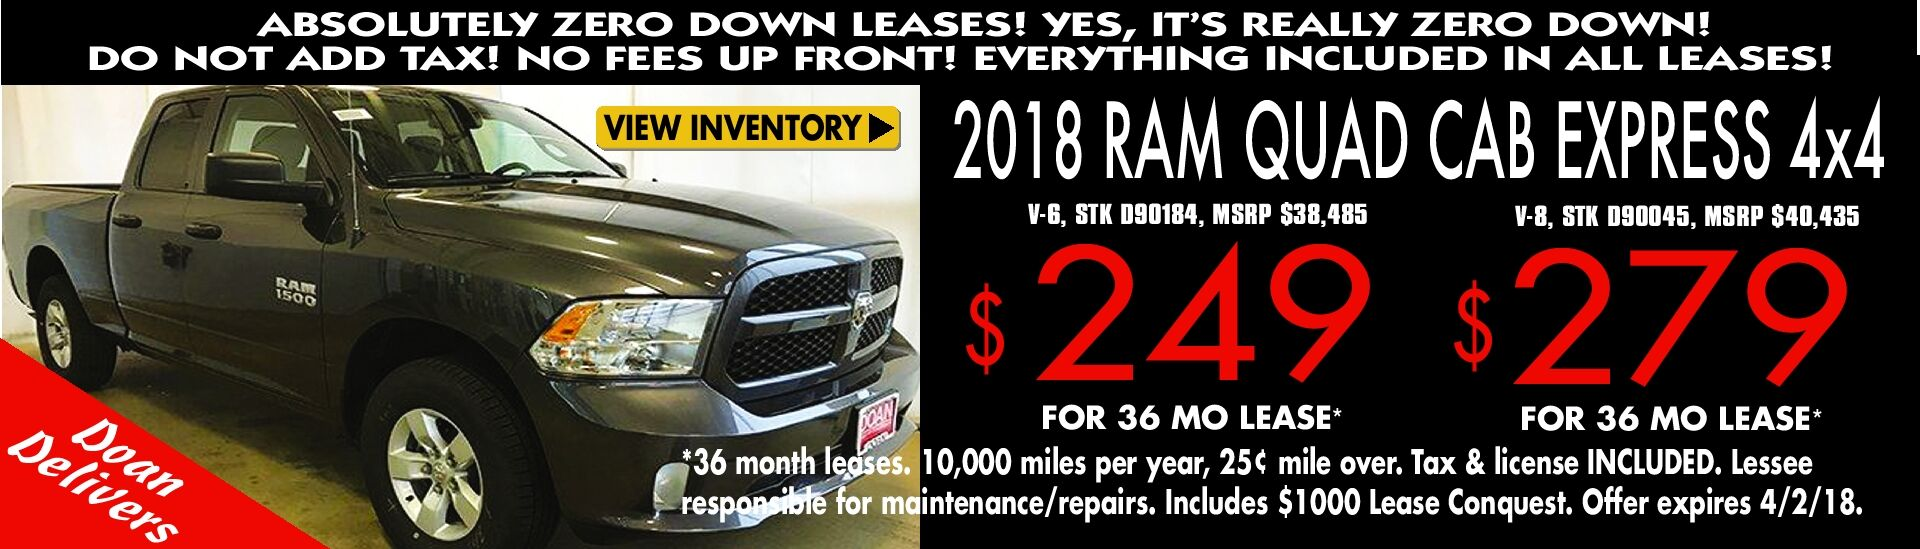 Lease a '18 RAM Quad Cab for as low as $249/mo.